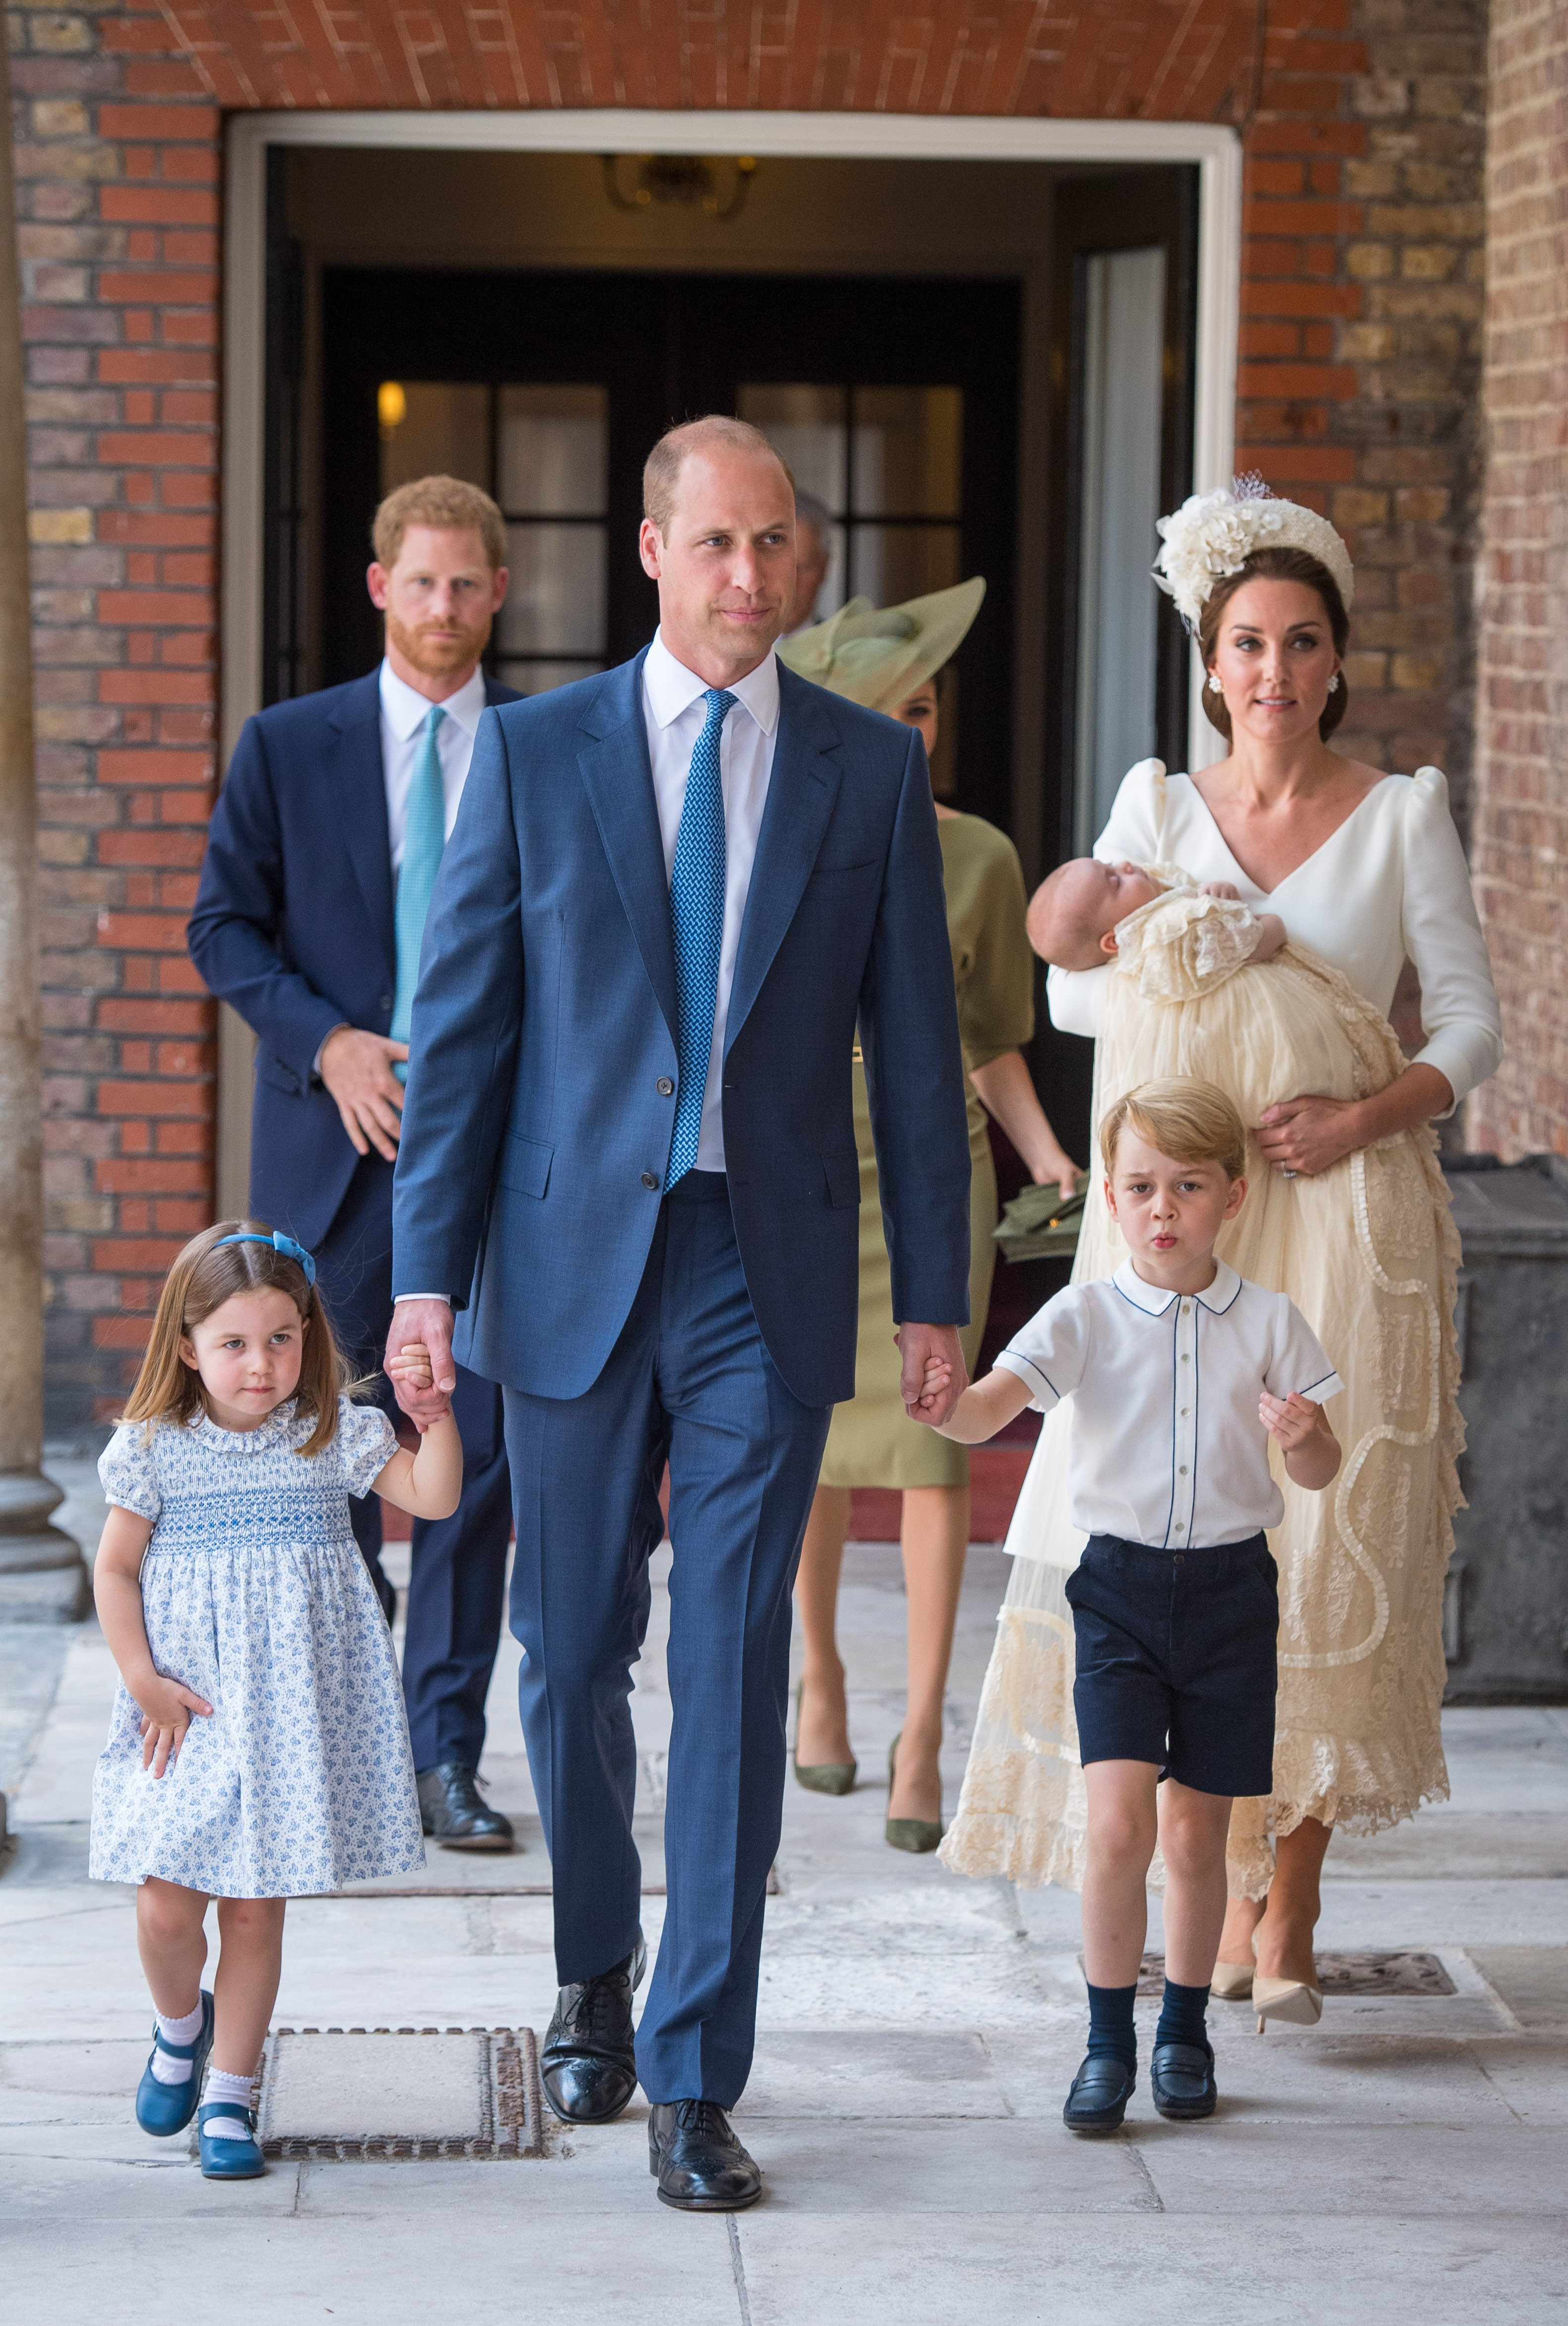 Os príncipes William, Harry, George e Louis, junto com a princesa Charlotte e as duquesas Kate Middleton e Meghan Markle chegam ao local do batizado de Louis (Foto: Getty Images)